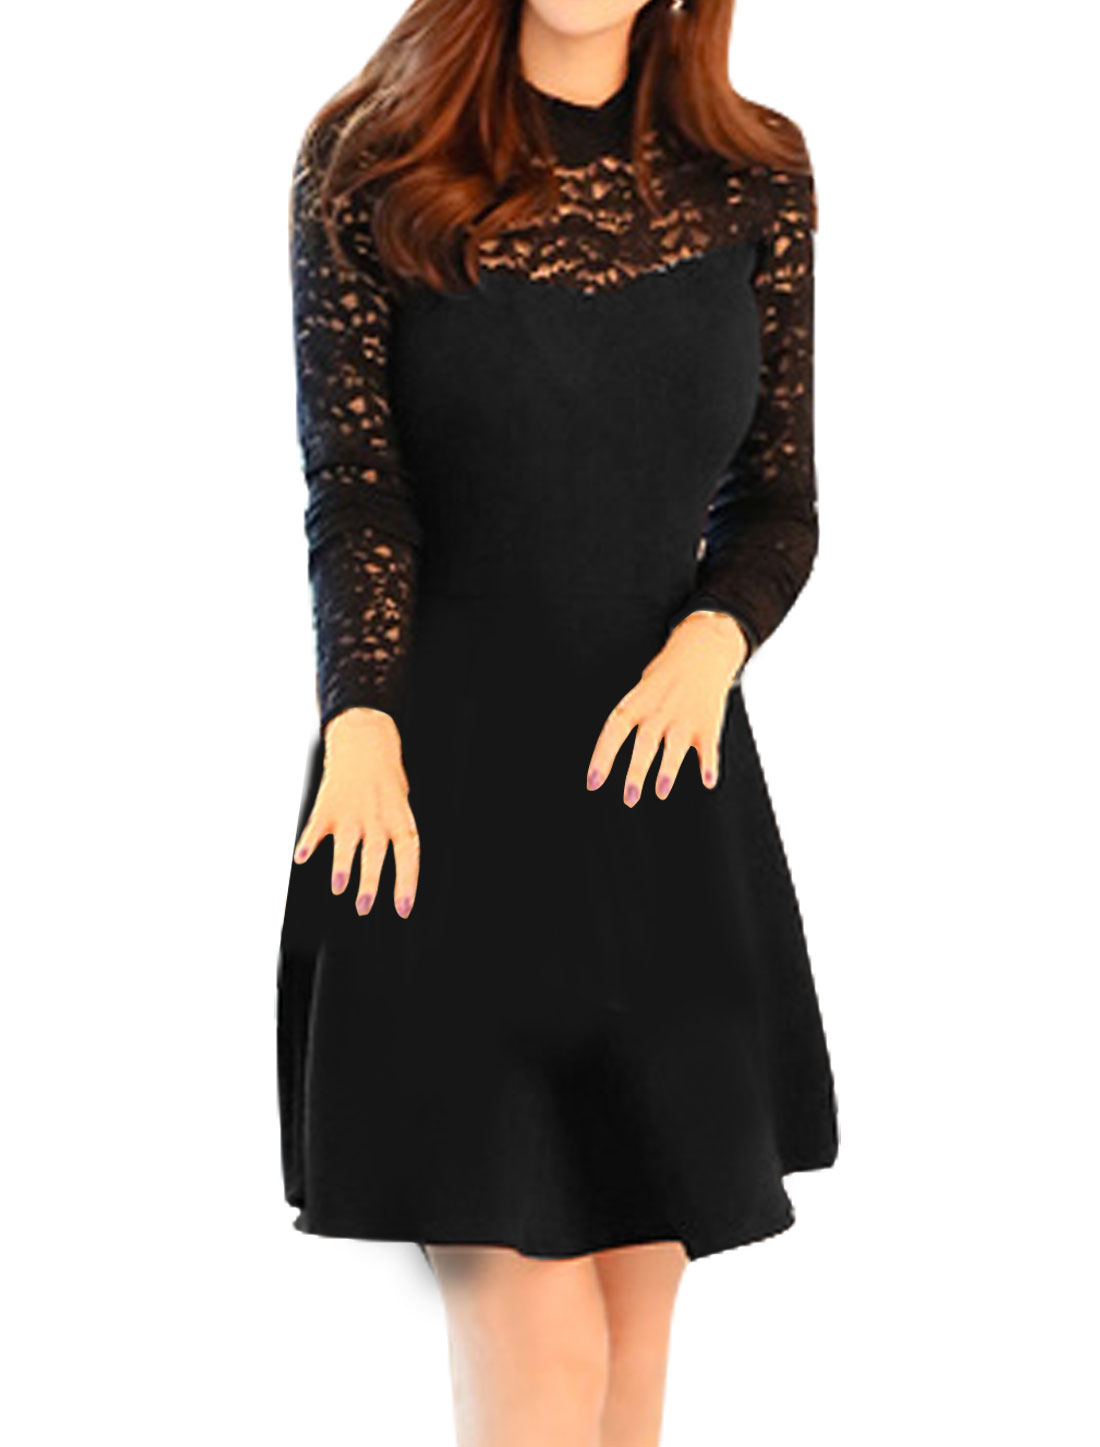 Women Mock Neck See Through Floral Lace Flare Dress Black S